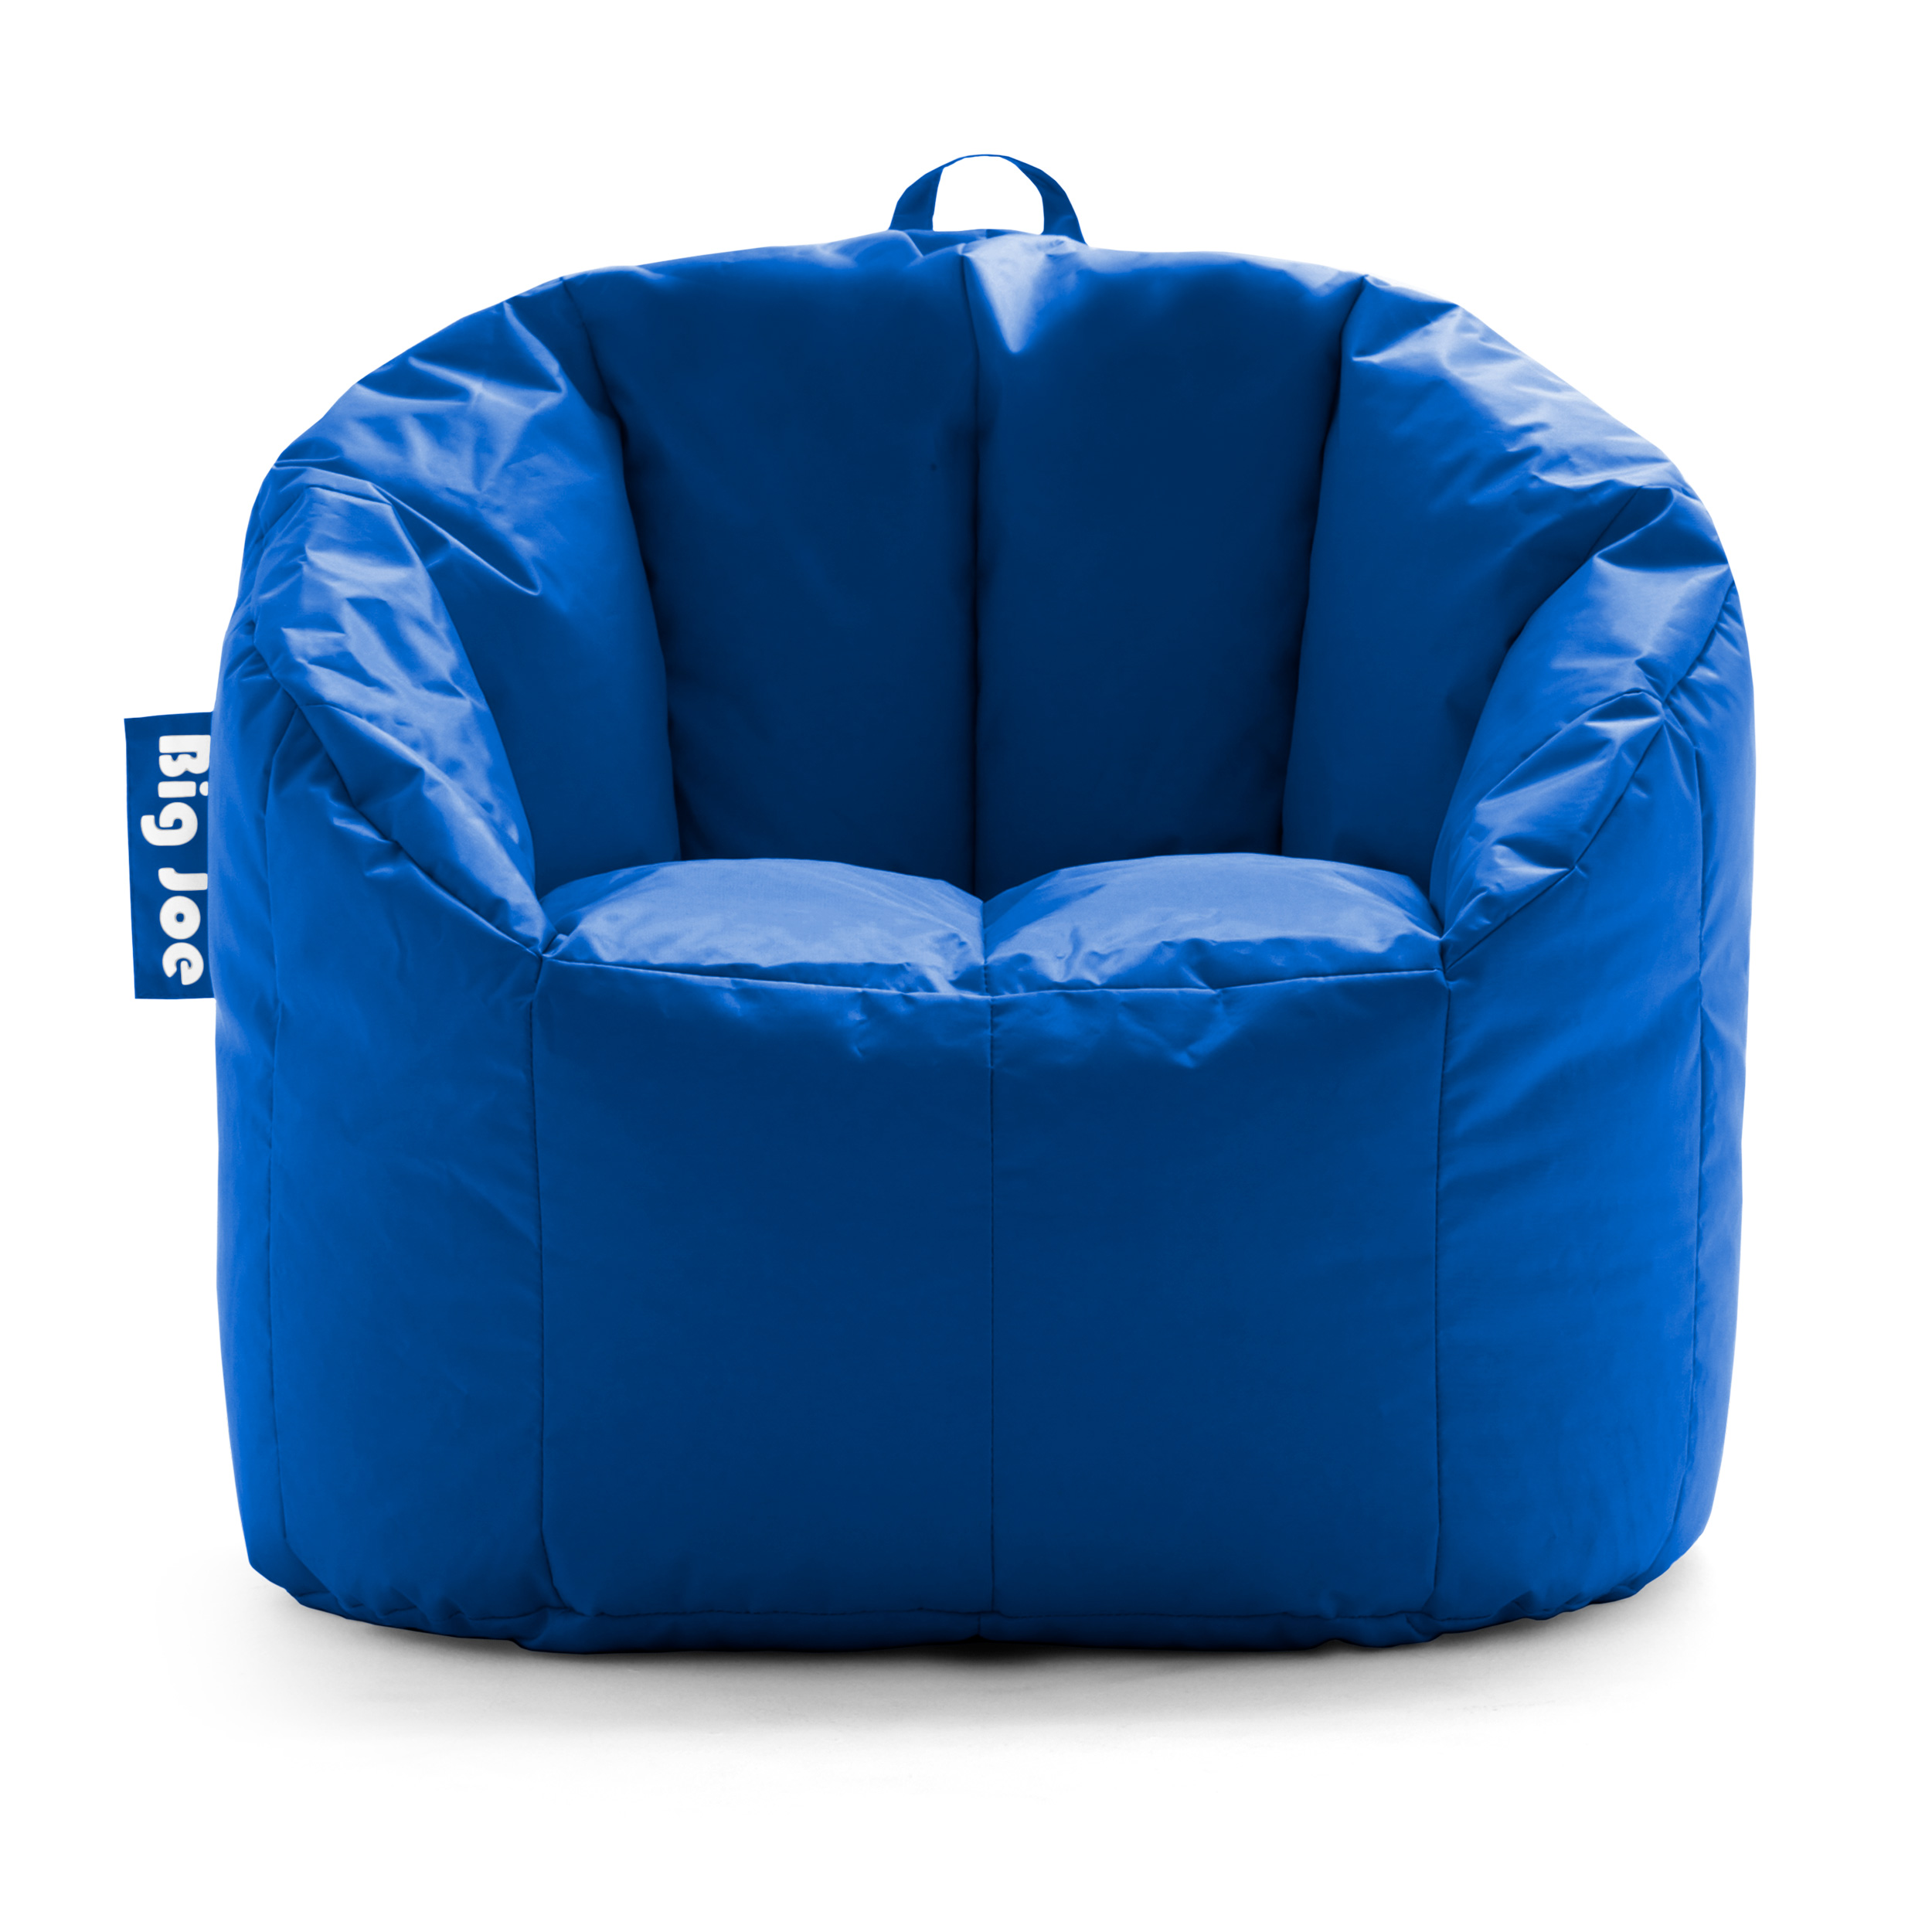 Pleasing Details About Big Joe Milano Bean Bag Chair Soft Cozy Comfortable Lightweight Kids Adult Blue Ibusinesslaw Wood Chair Design Ideas Ibusinesslaworg